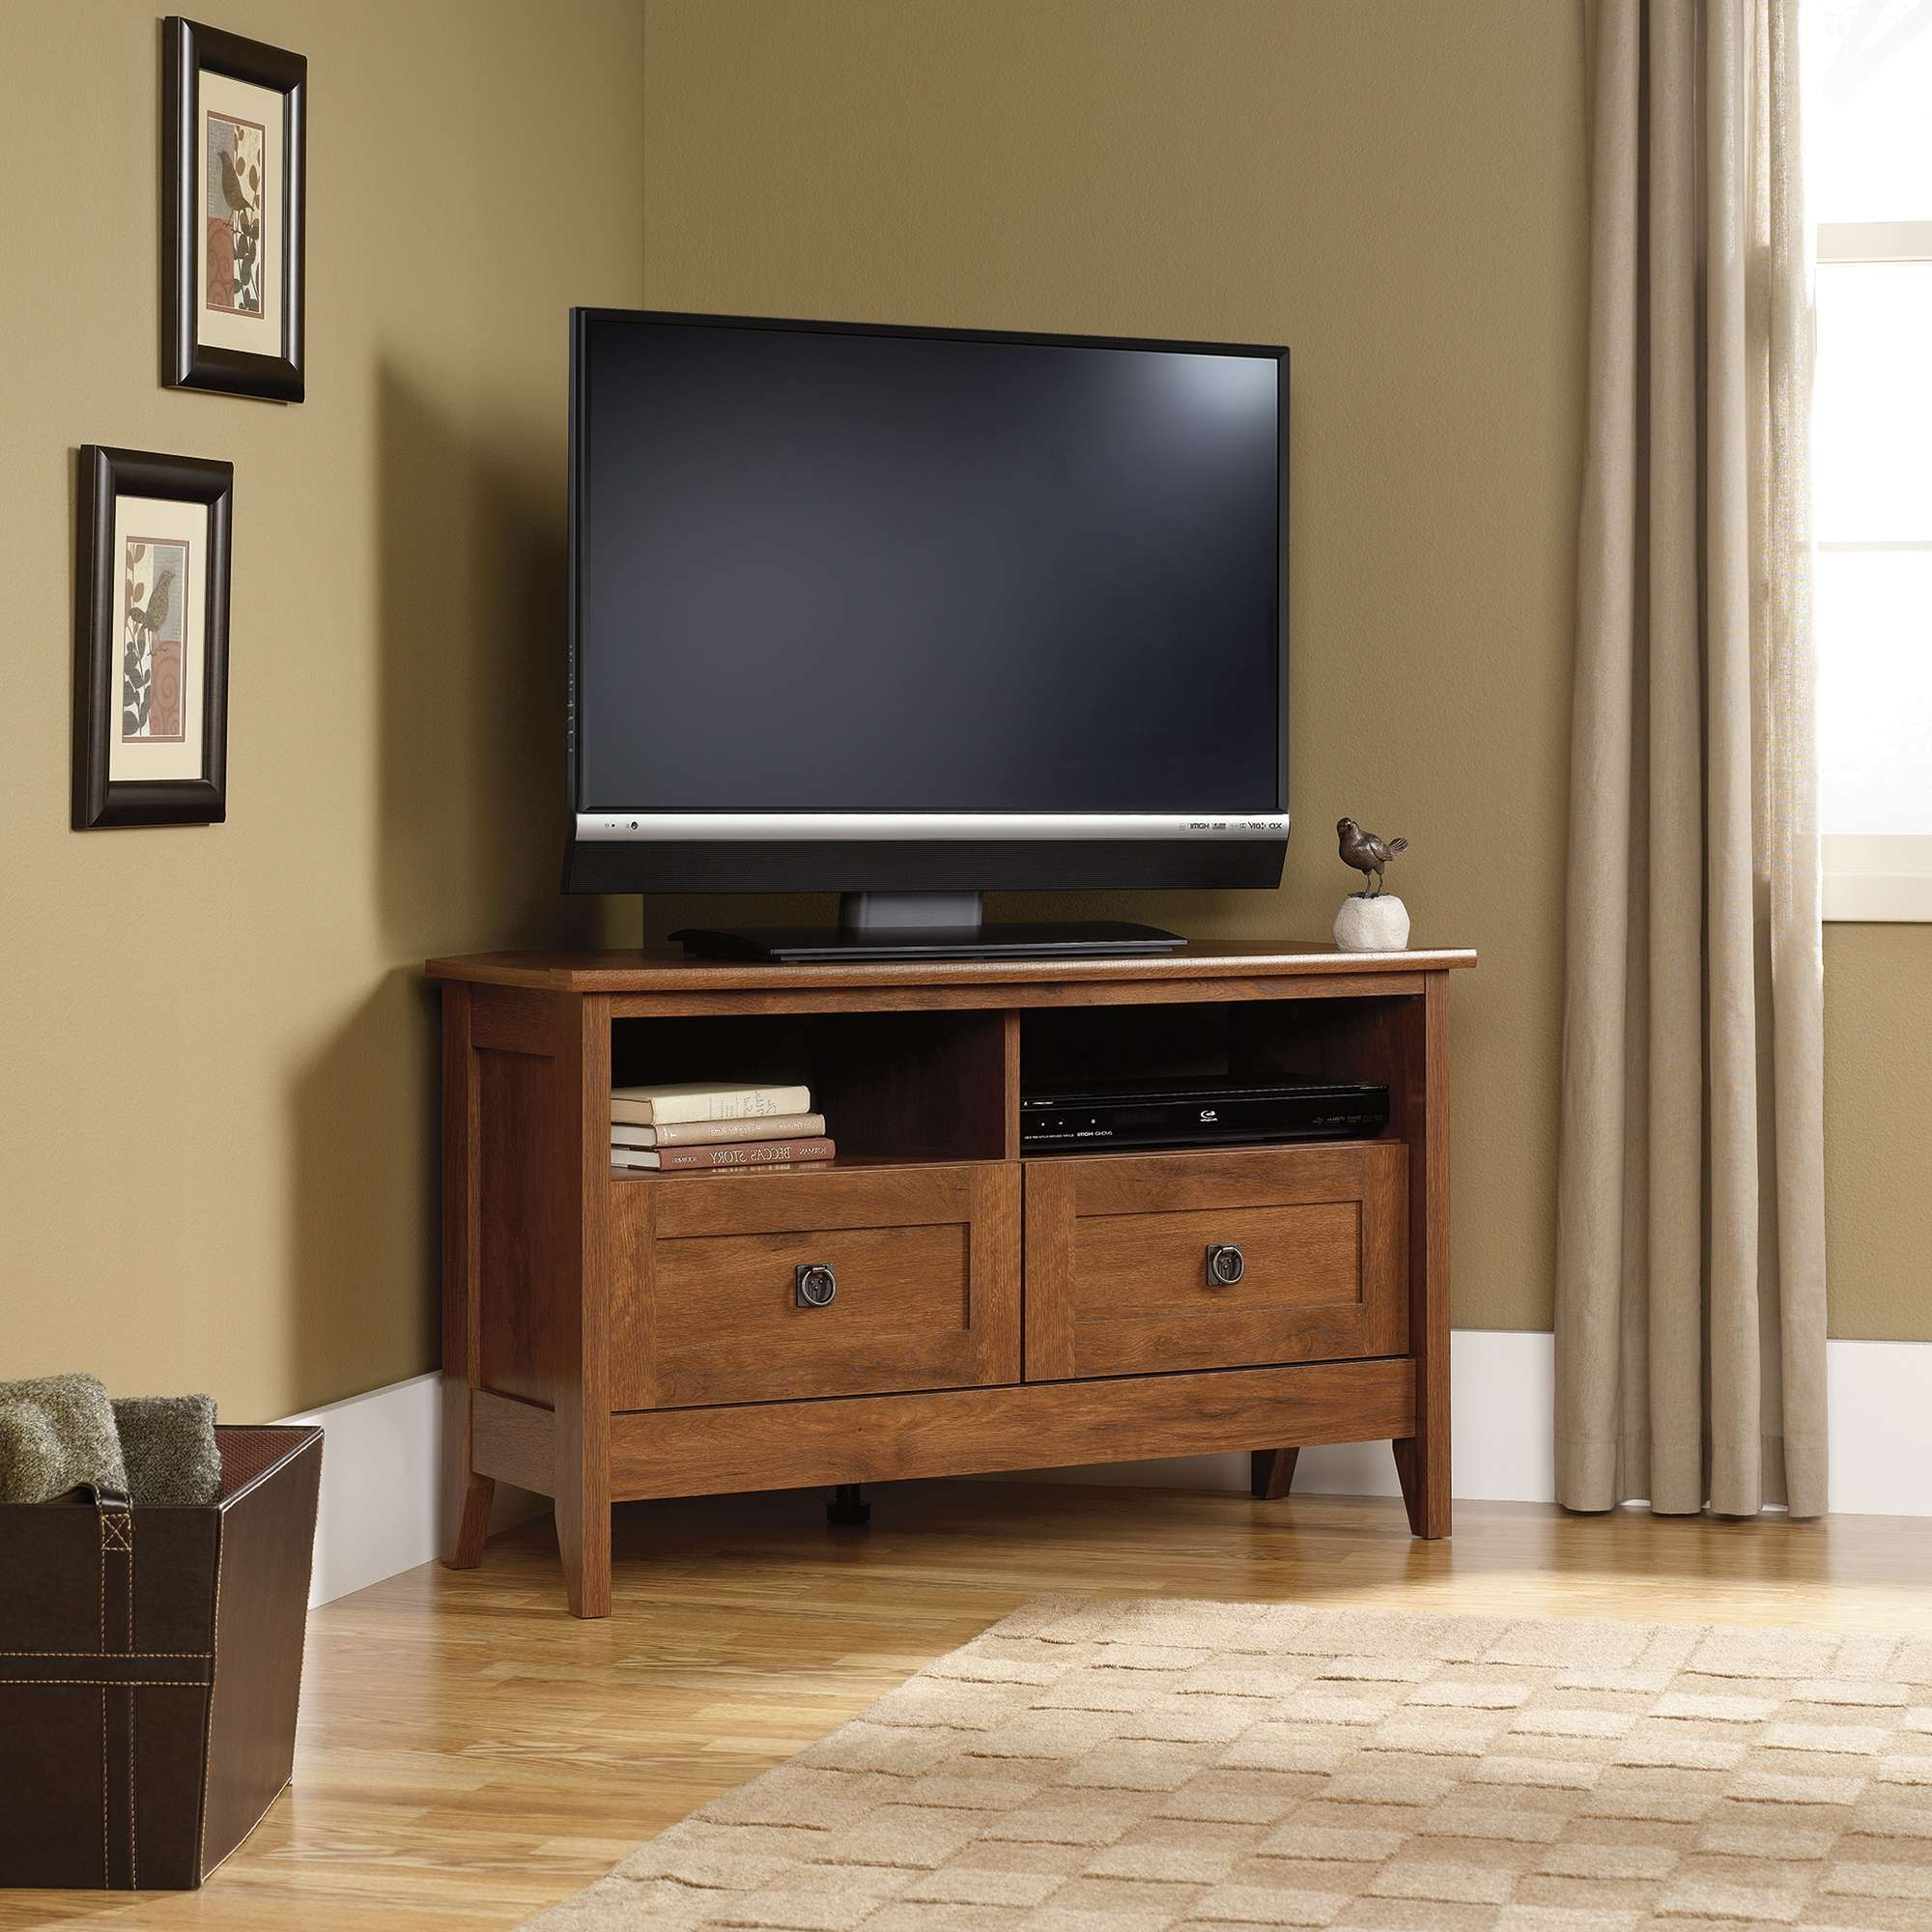 Corner Oak Tv Cabinets For Flat Screens With Doors • Corner Cabinets Within Oak Tv Cabinets For Flat Screens With Doors (View 2 of 20)